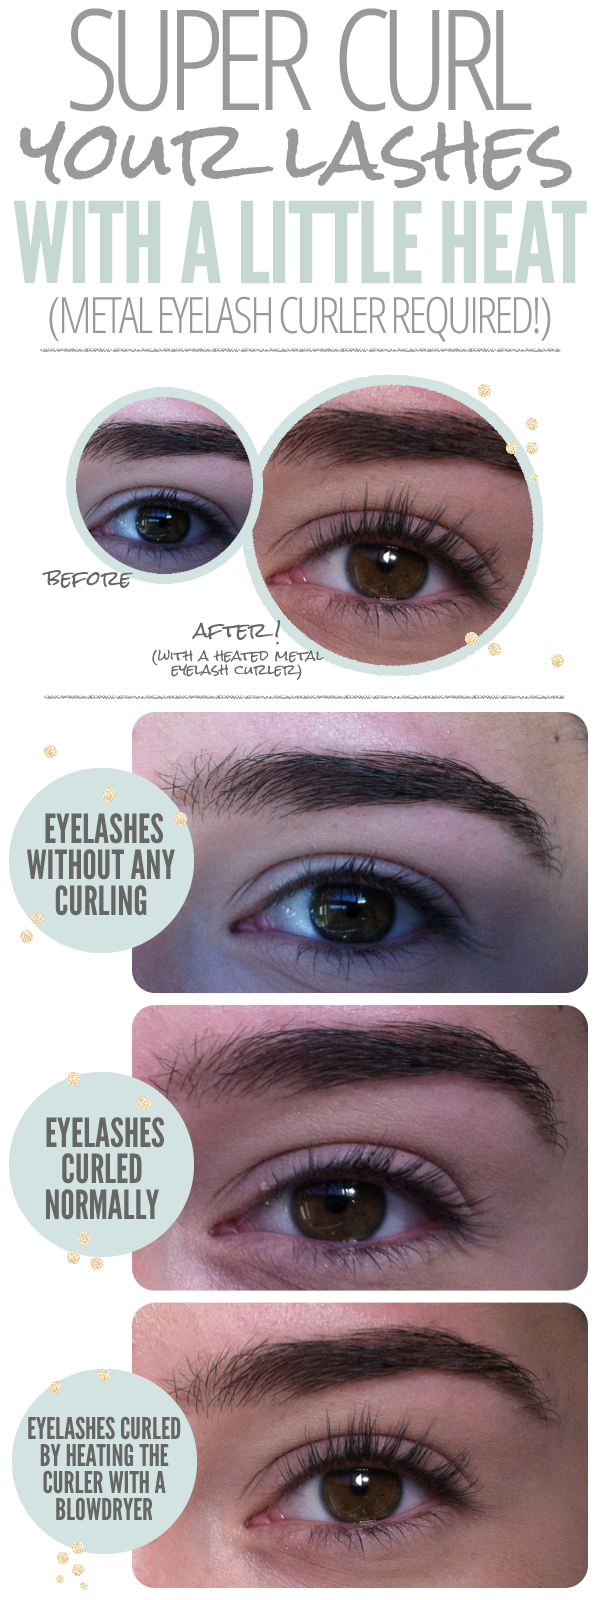 heated eyelash curler results. super curl your lashes \u003e\u003e heat eyelash curler with blowdryer because my eyelashes are, like, nonexistent without a lot of help! heated results r